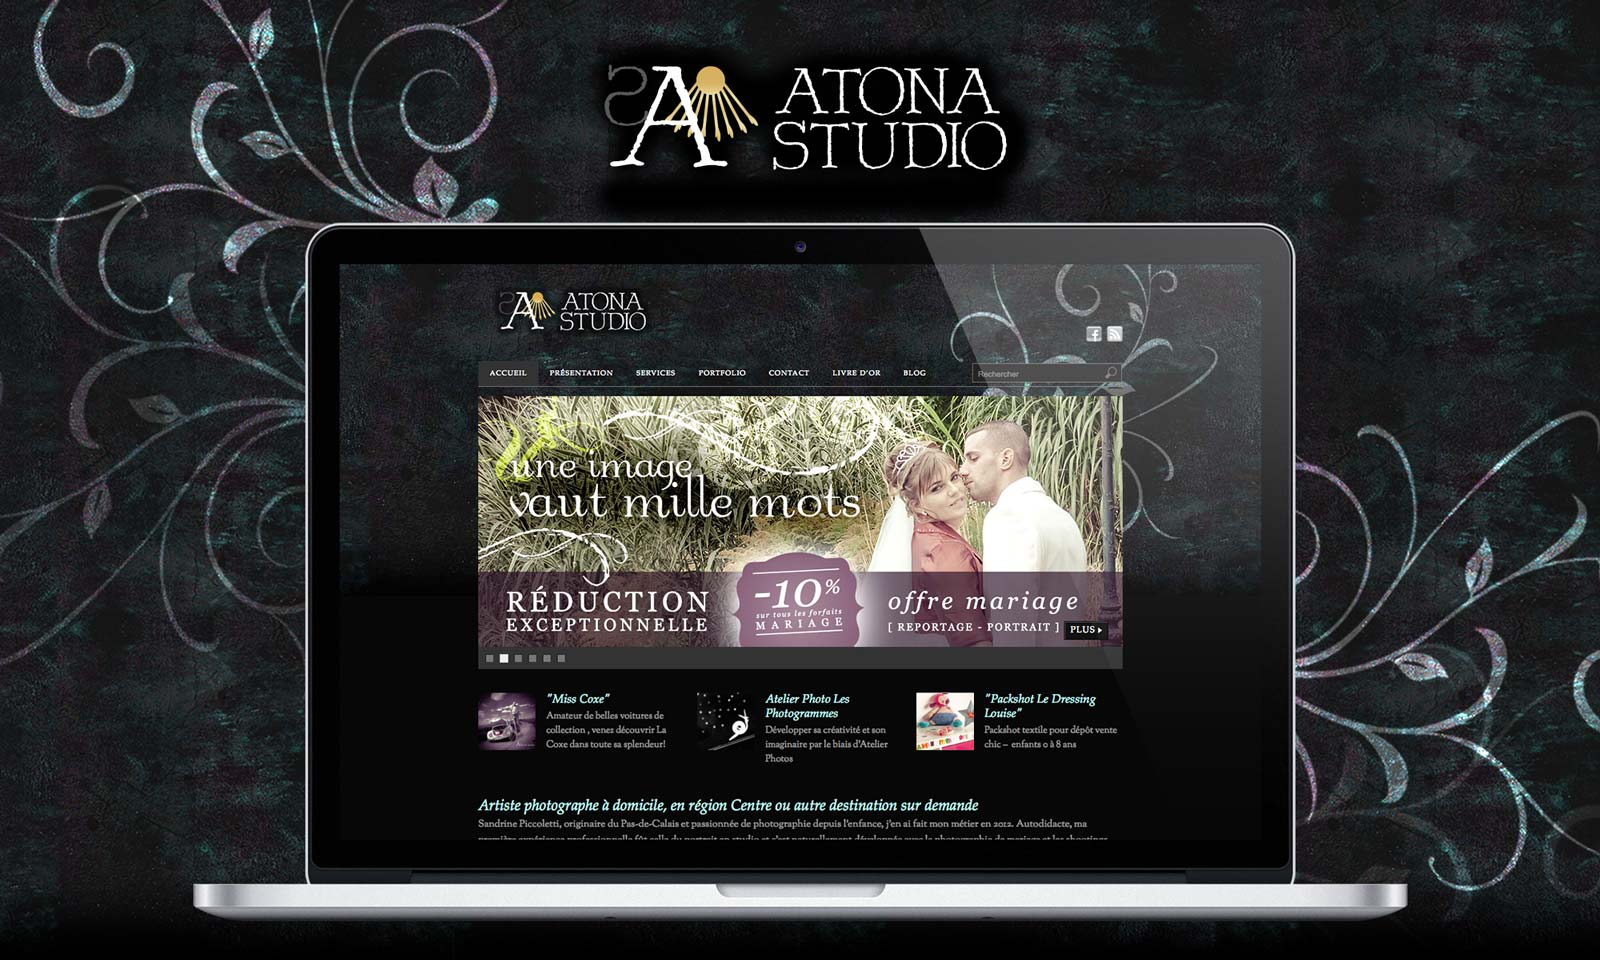 atona-studio-v1-website-home